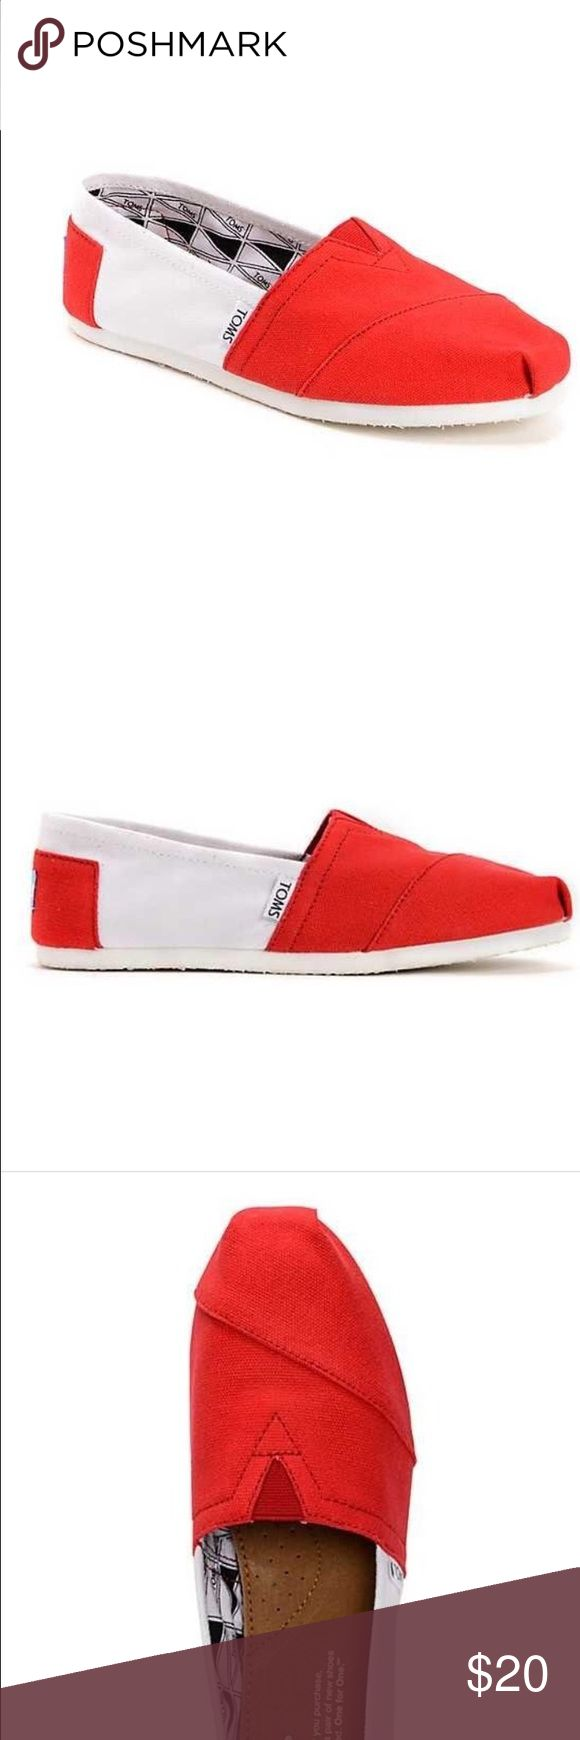 WOMENS TOMS UNIVERSITY OF WISCONSIN SLIP ON University of Wisconsin colorway. Cardinal and white upper. Lightweight canvas construction. Elastic V on top for easy in and out. Suede footbed for extra cushion and comfort. Light one piece outsole for better flexibility. Built in latex arch for extra support. Toms tag on back and side. Officially licensed by the Collegiate Licensing Company.shipped without box TOMS Shoes Flats & Loafers